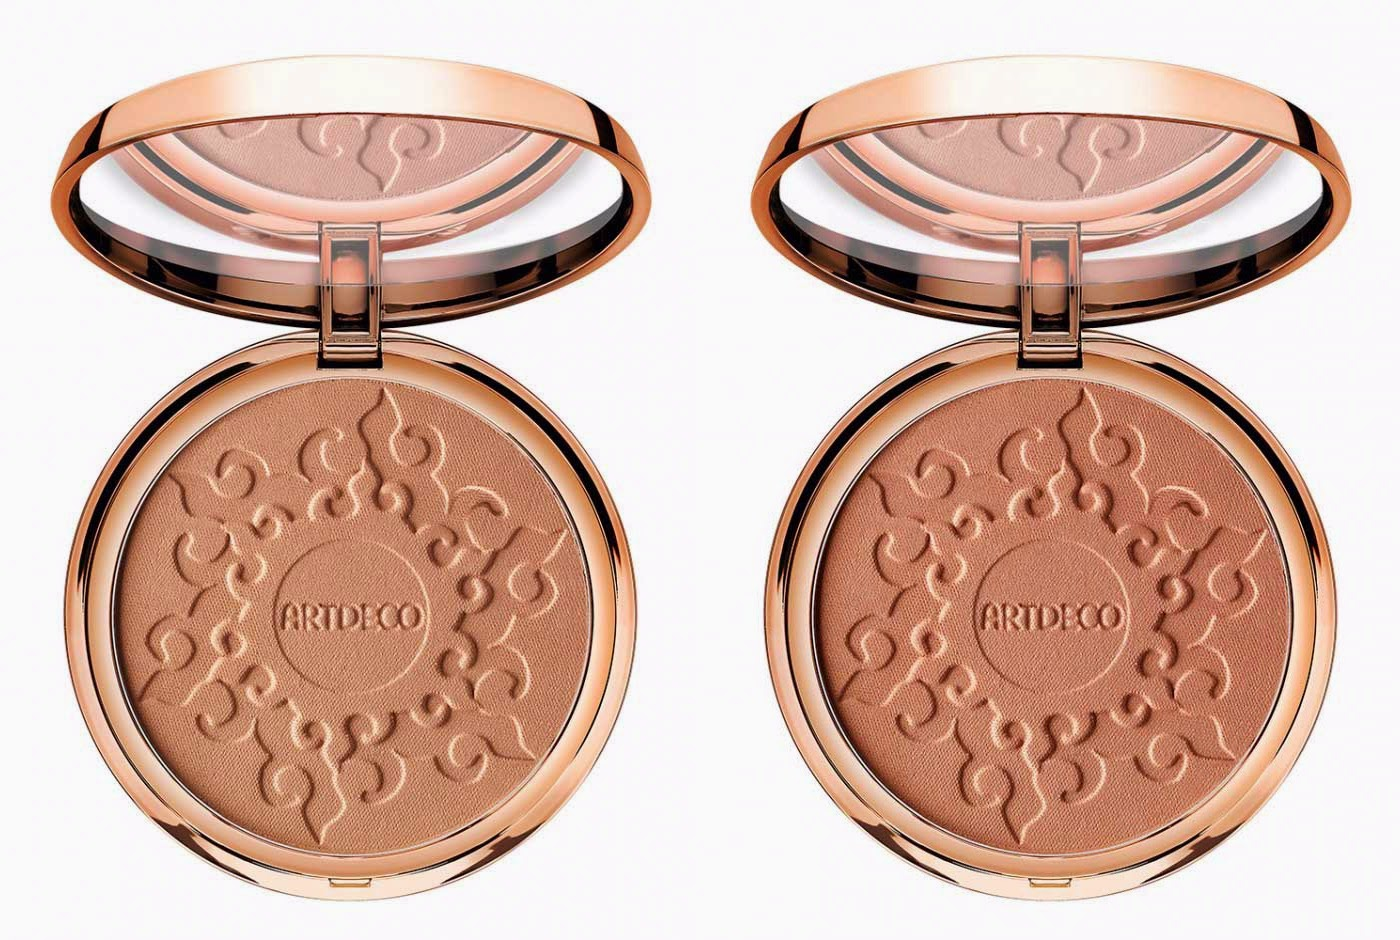 artdeco-bronzing-compact-powder-promo-here-comes-the-sun-summer-2015-collection-picture